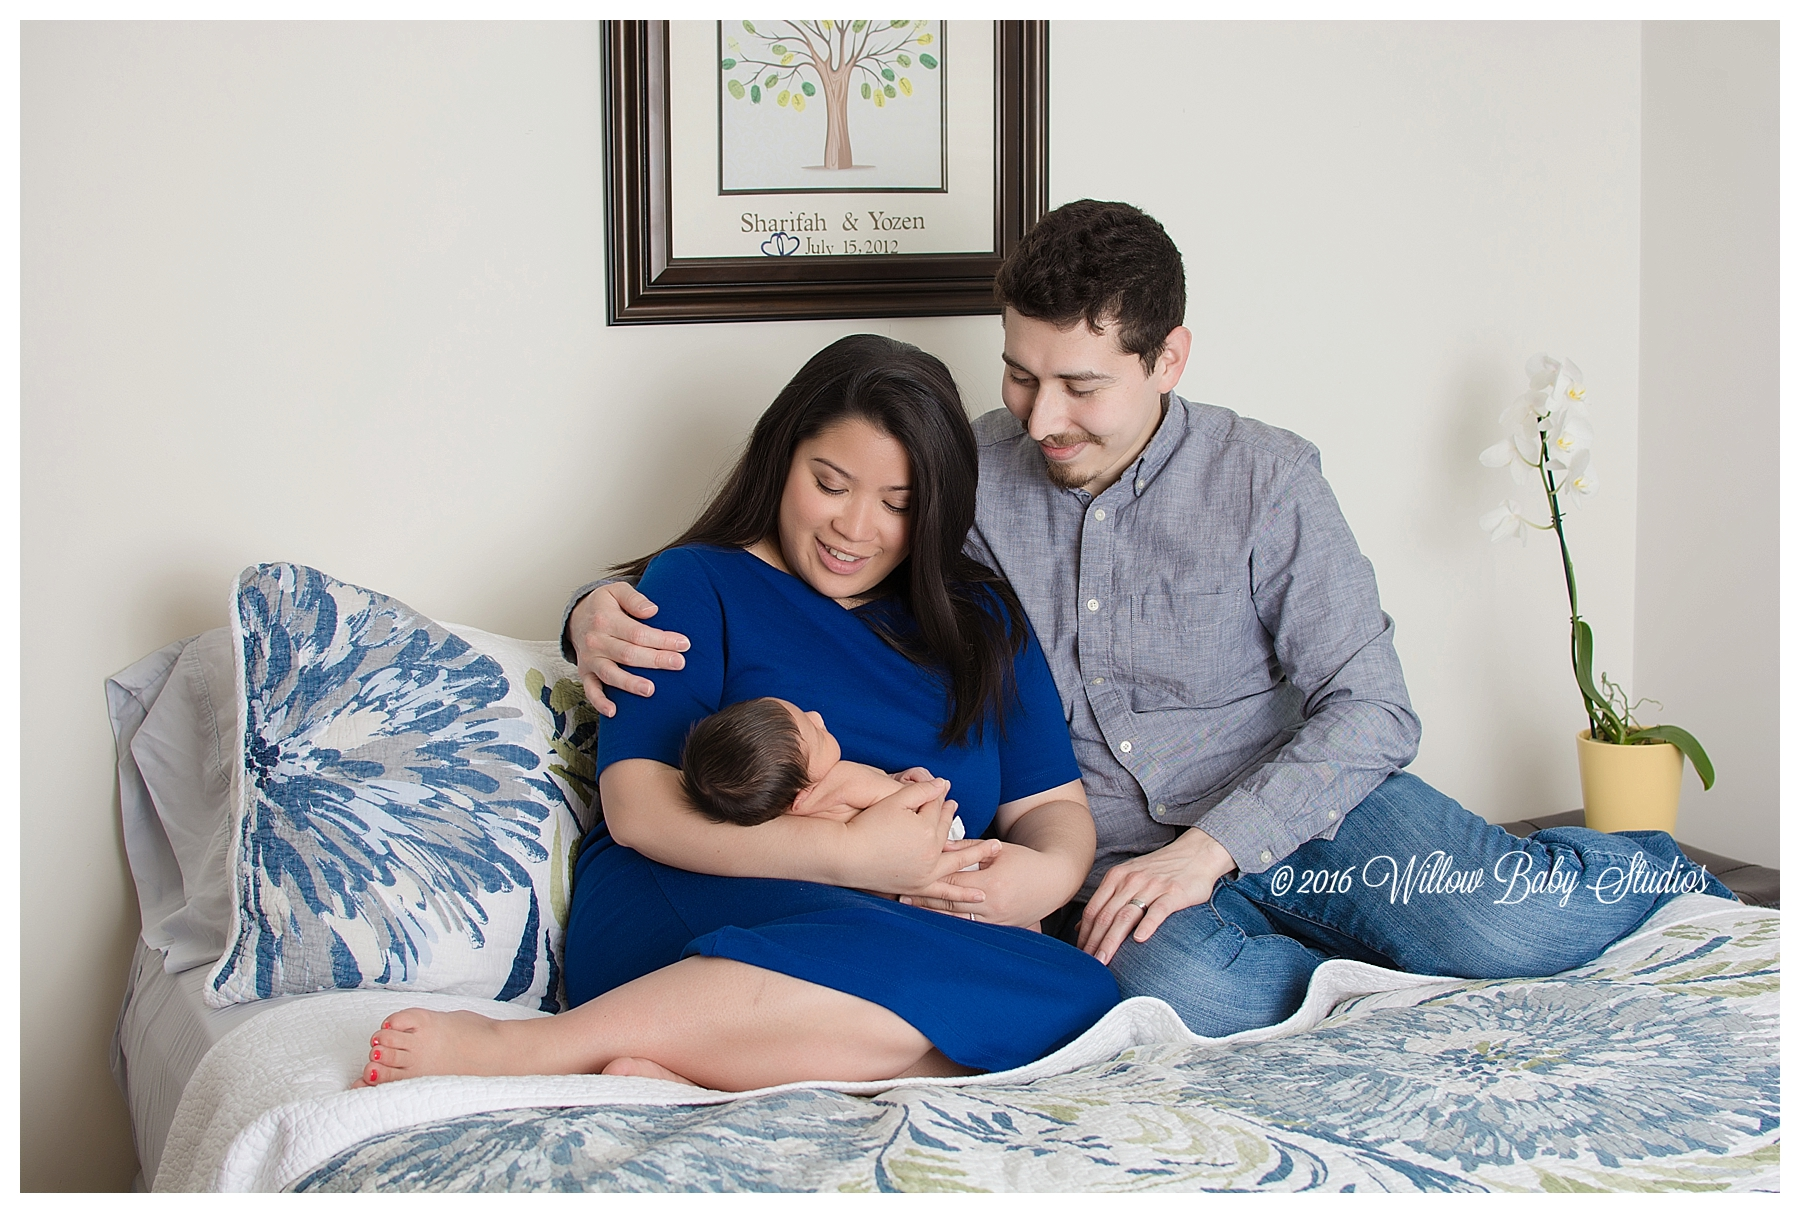 new-parents-snuggling-boston-baby